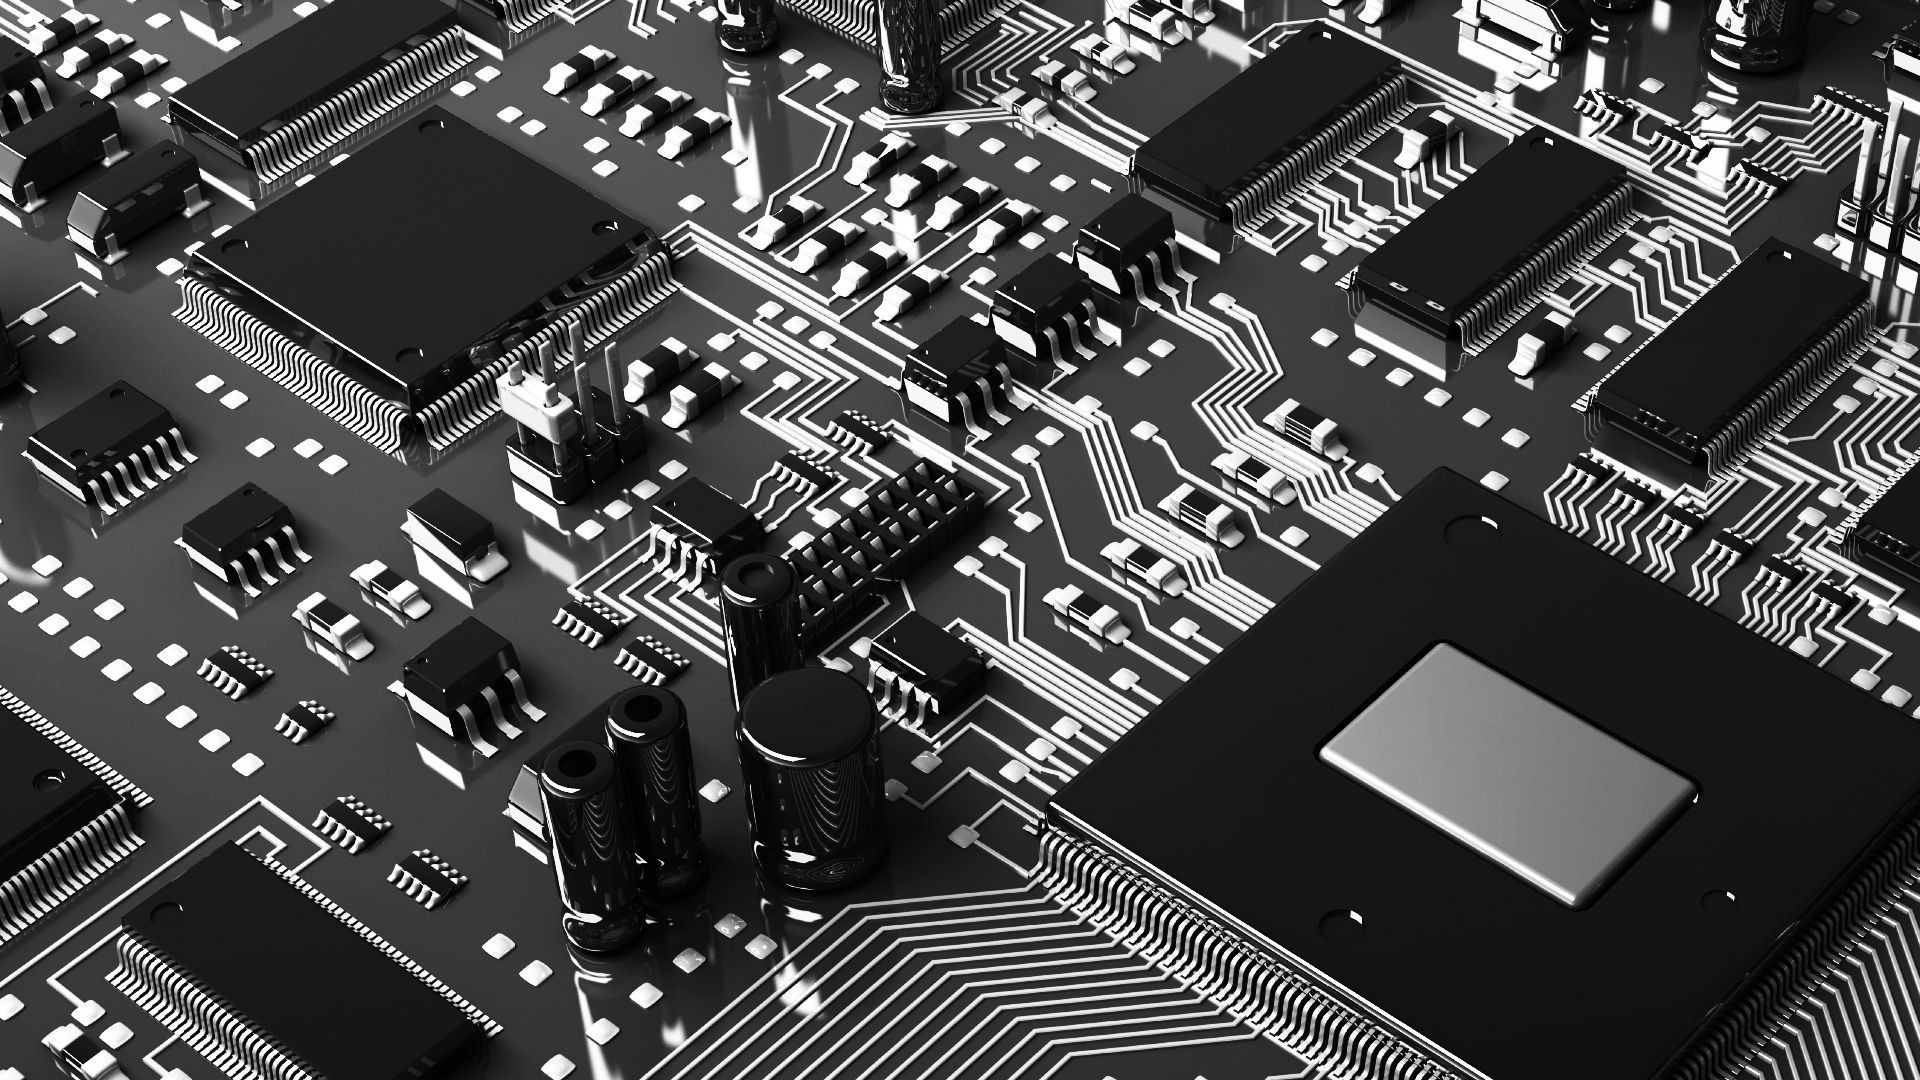 Res: 1920x1080, Computers Black and white photo of a computer chip